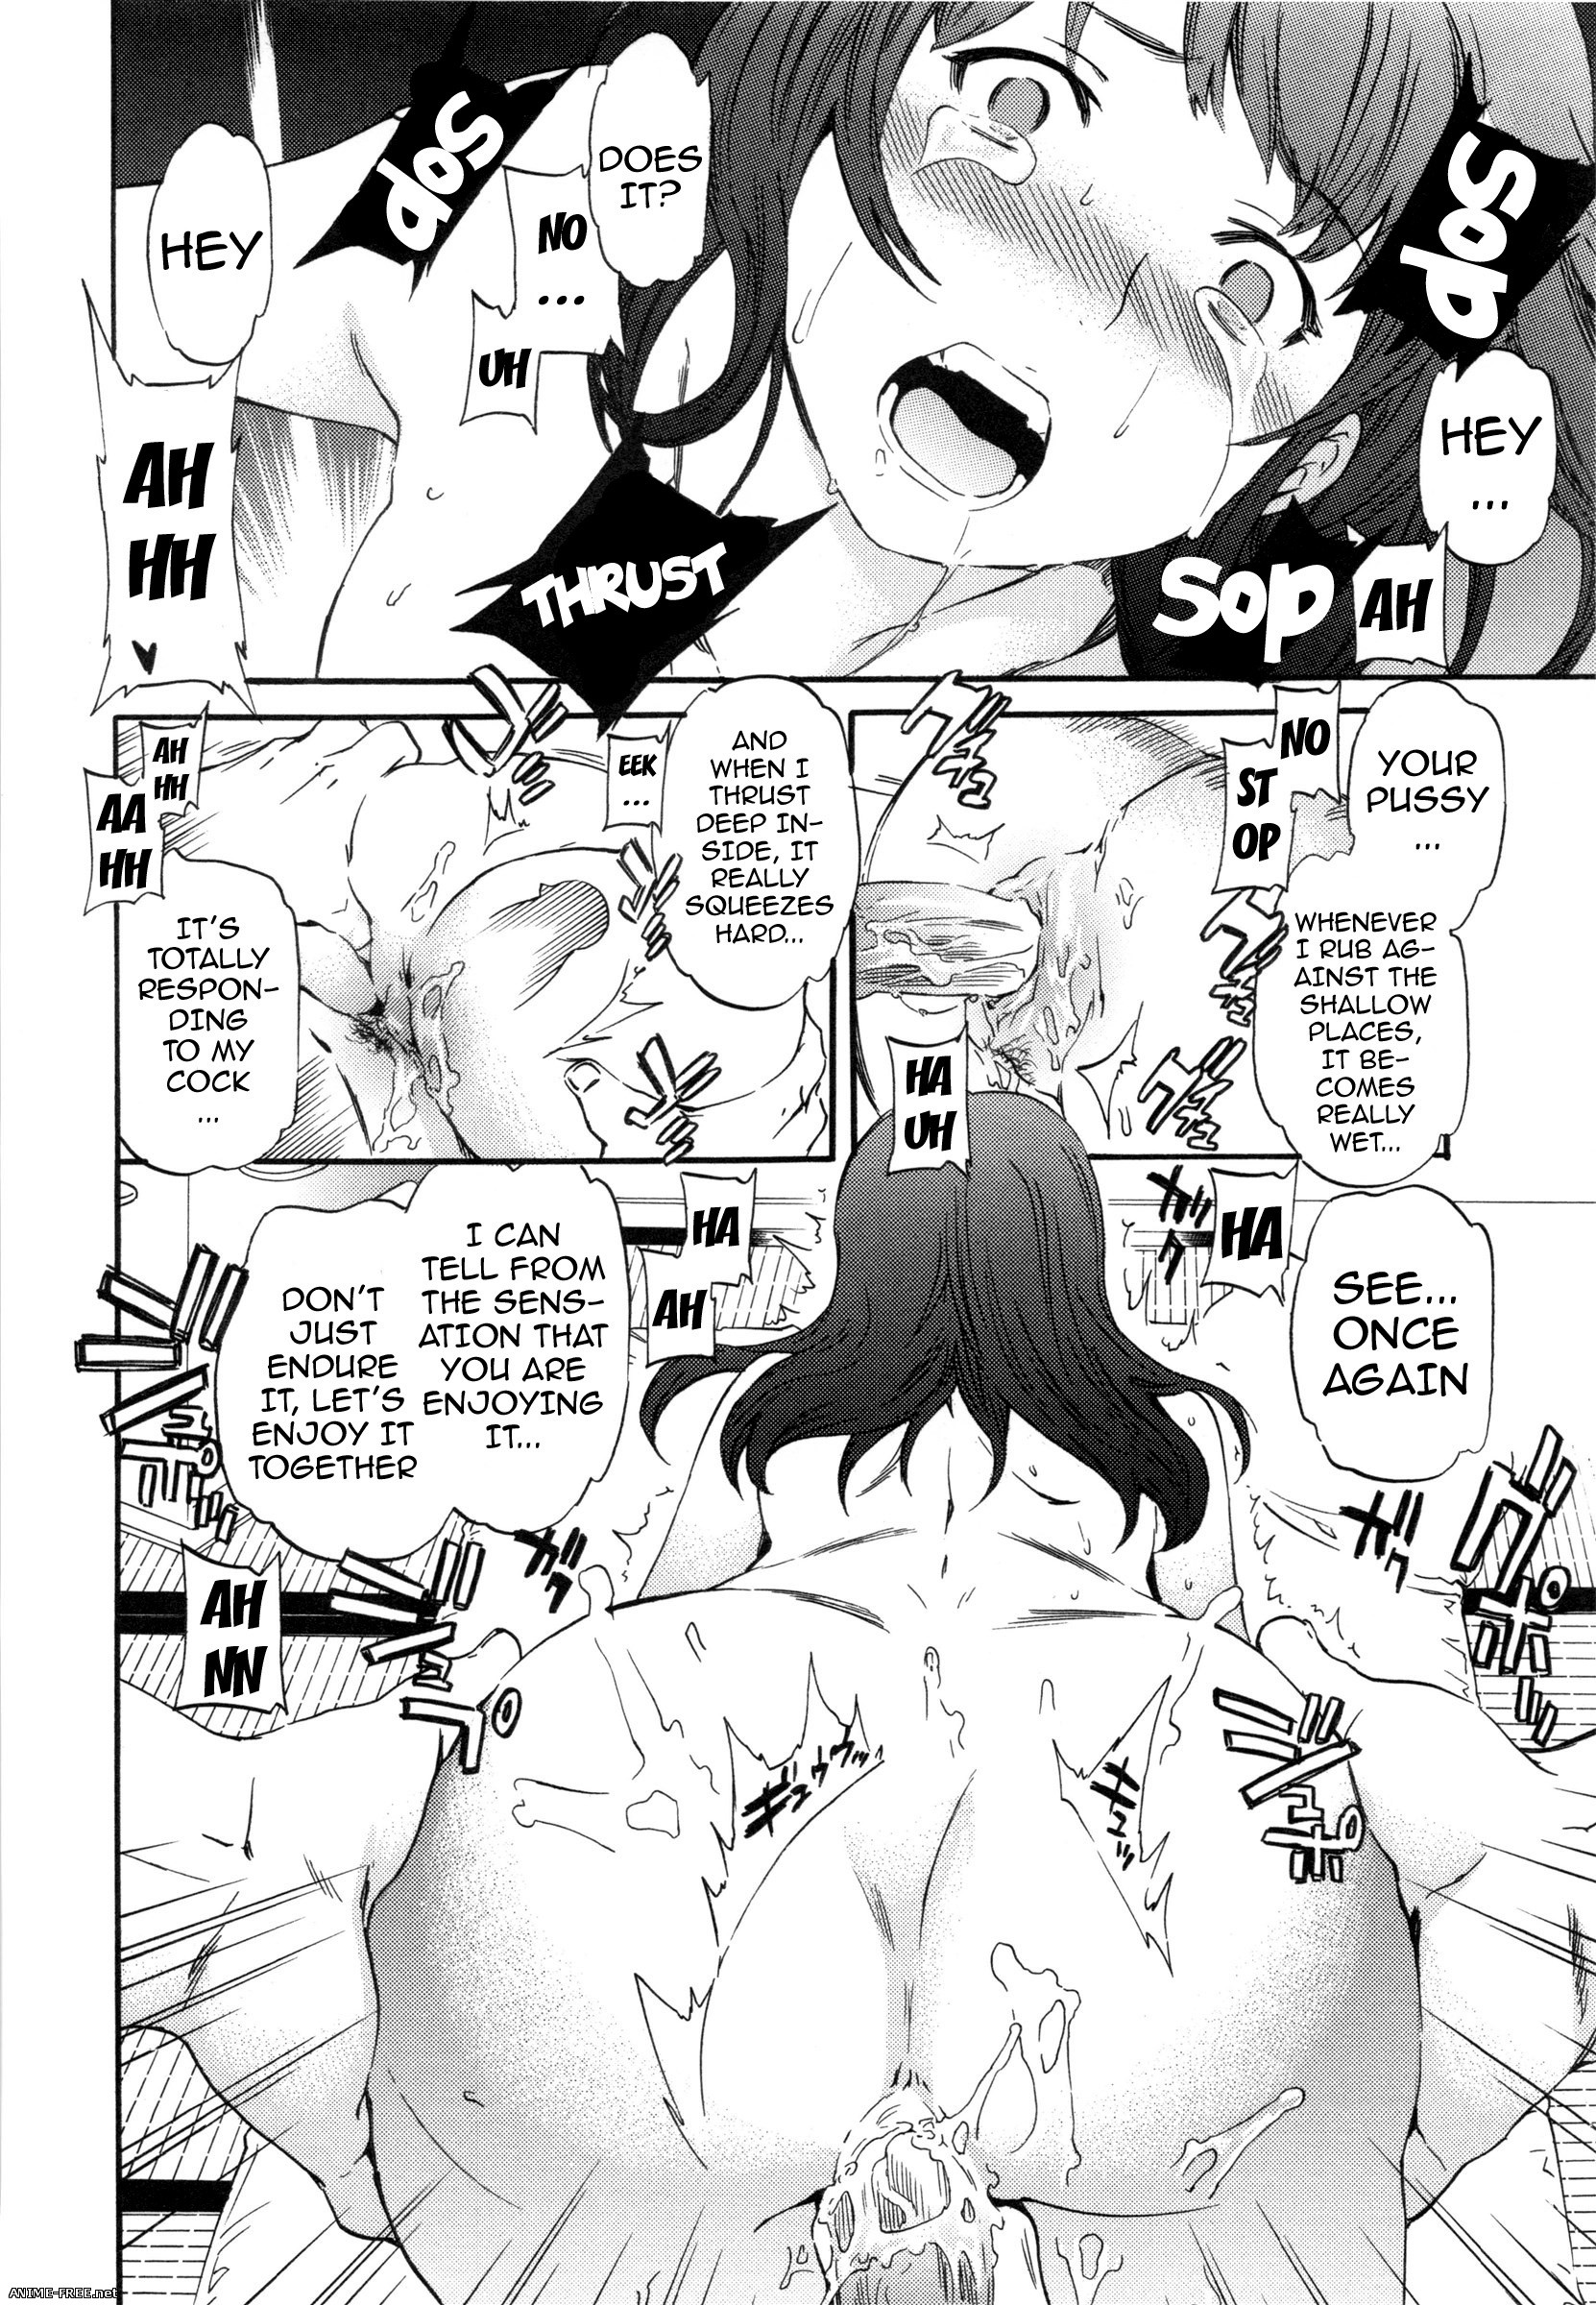 Cuvie / Shoot Outs / Disaster - ������� ������ ����� [Ptcen] [RUS,ENG,JAP] Manga Hentai